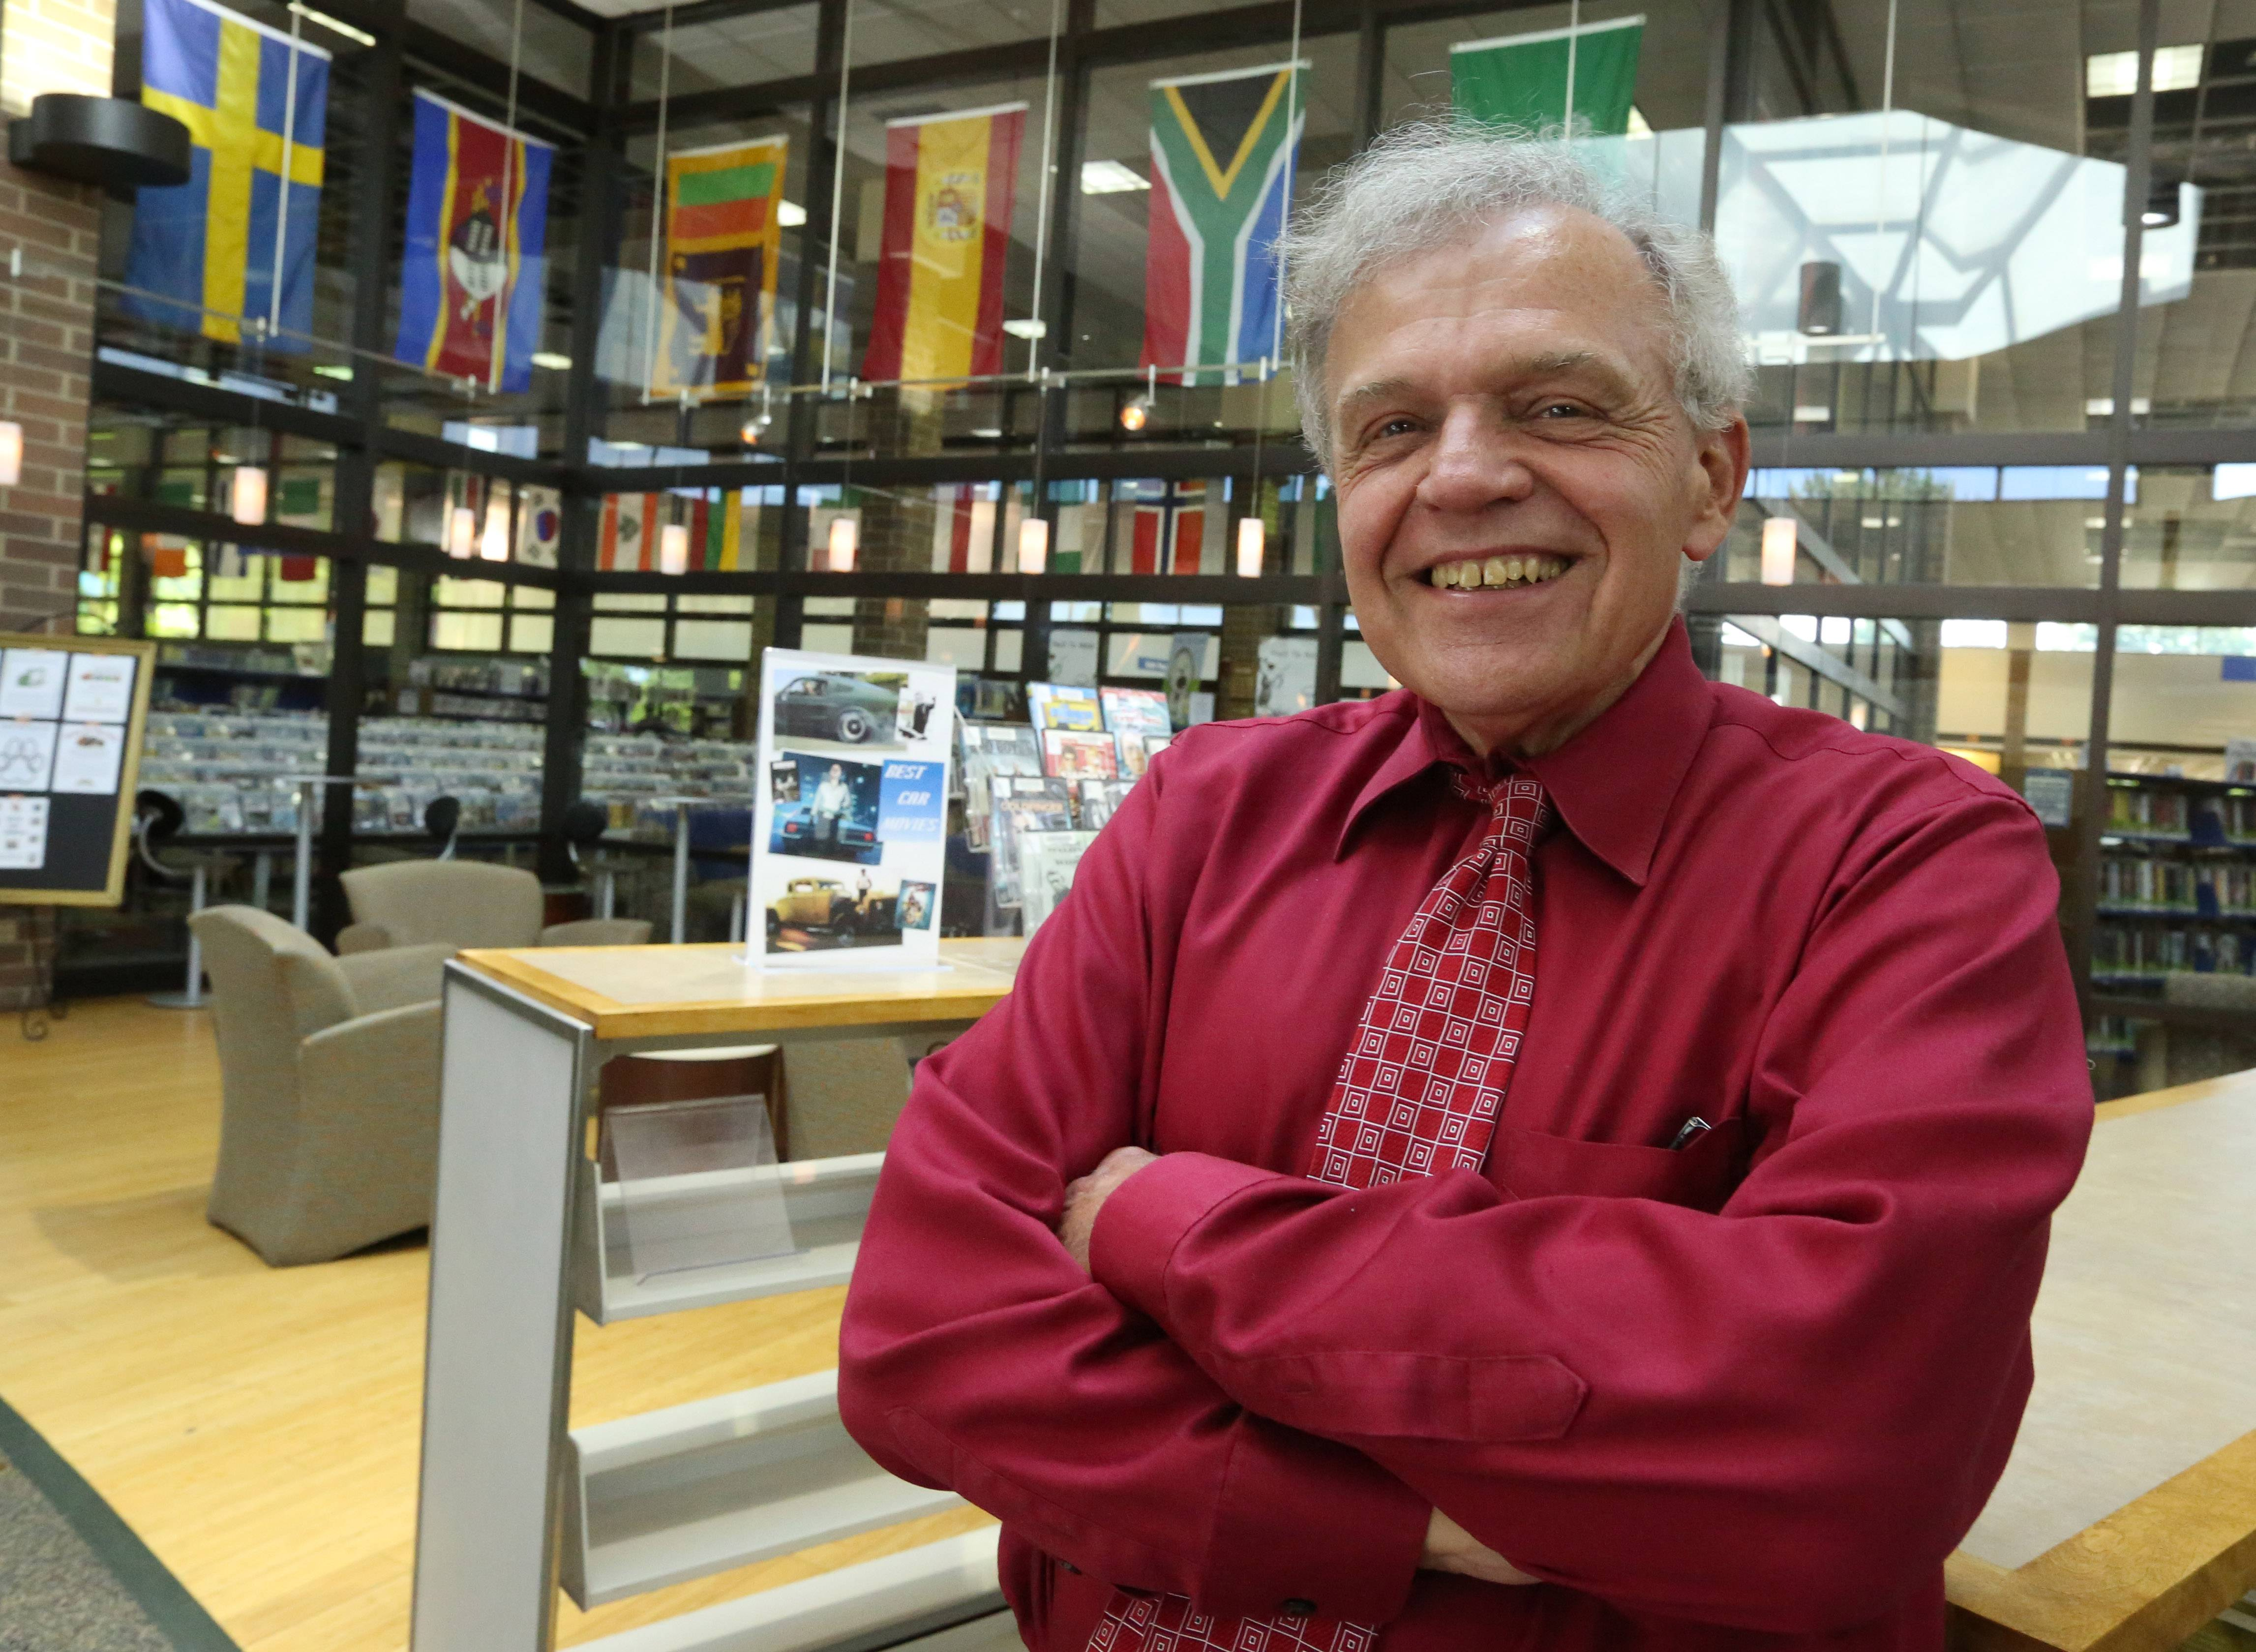 Elk Grove Public Library Director Lee Maternowski retires today after nearly four decades of employment at the library. He's been library director since 1997.